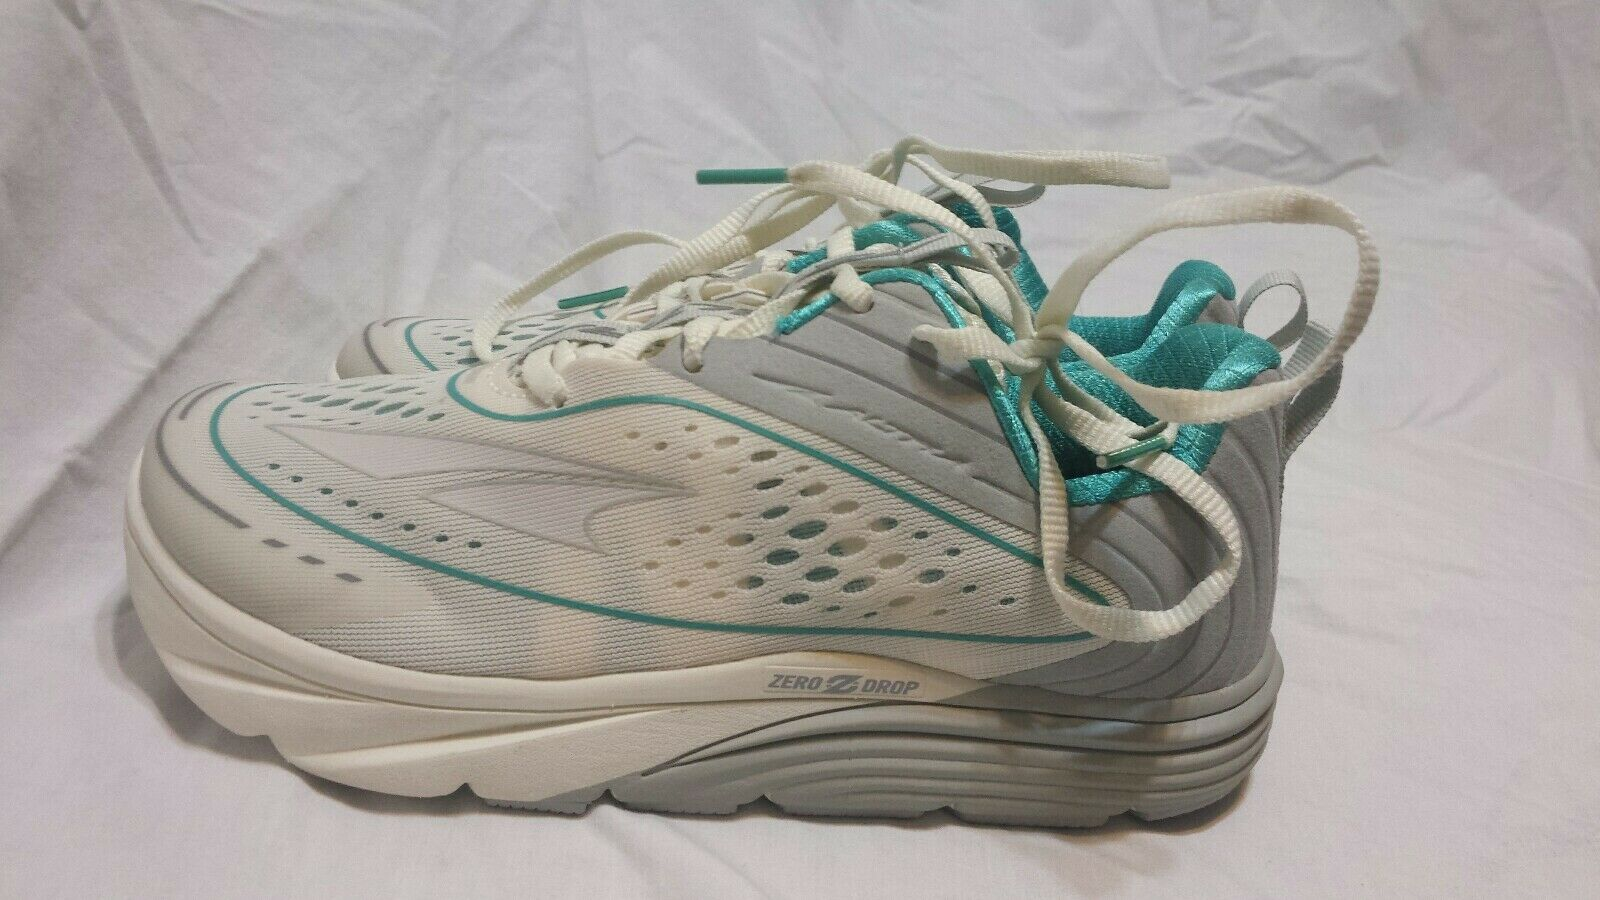 ALTRA TORIN 3.5 Women's Running shoes Size 6.5 NEW white